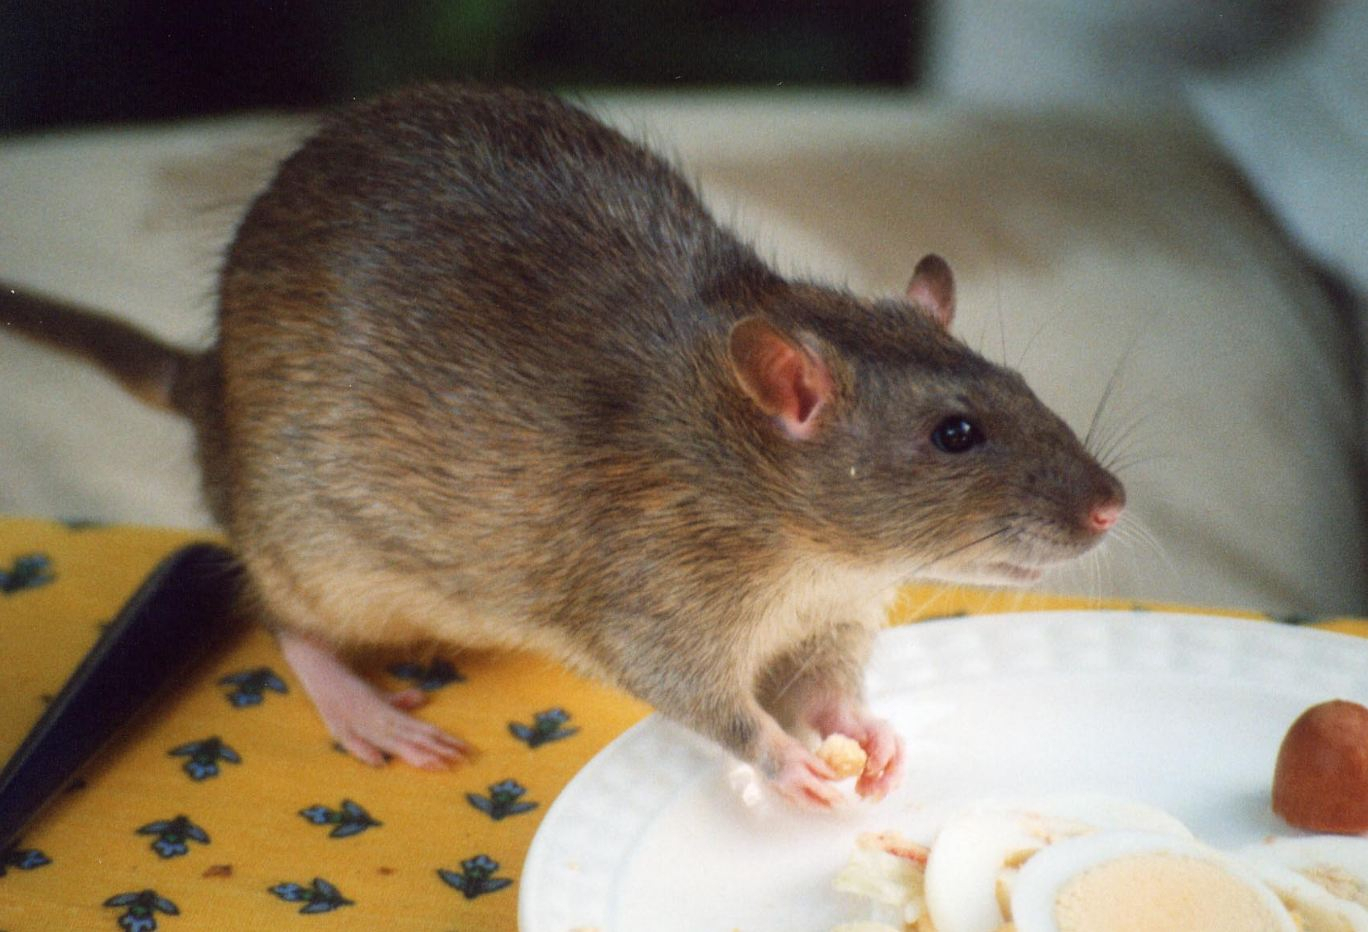 After coronavirus, Hantavirus claims 1 life in China; but what is it?